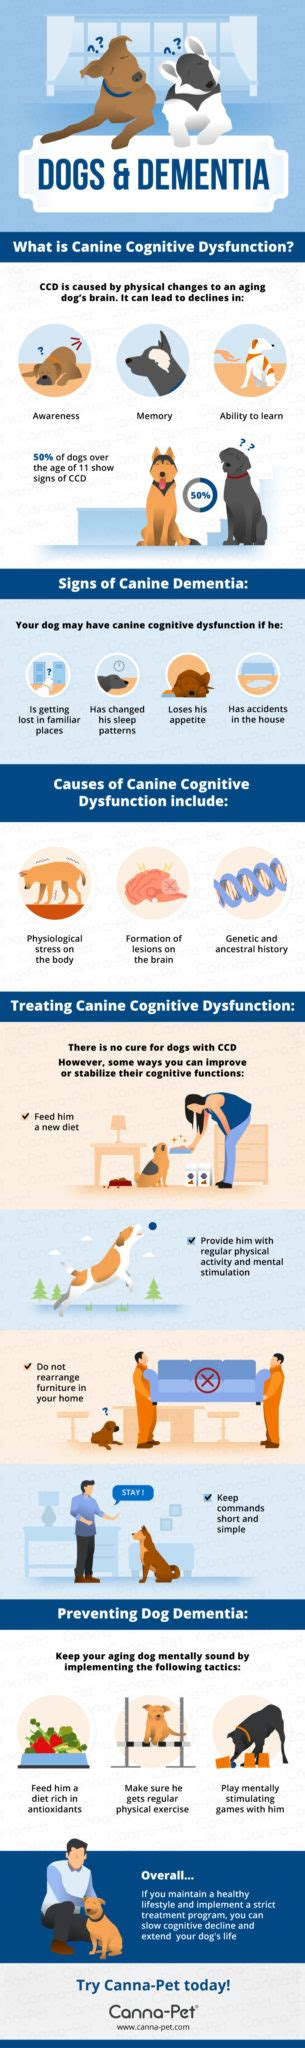 dementia in dogs dementia cognitive dysfunction canna pet